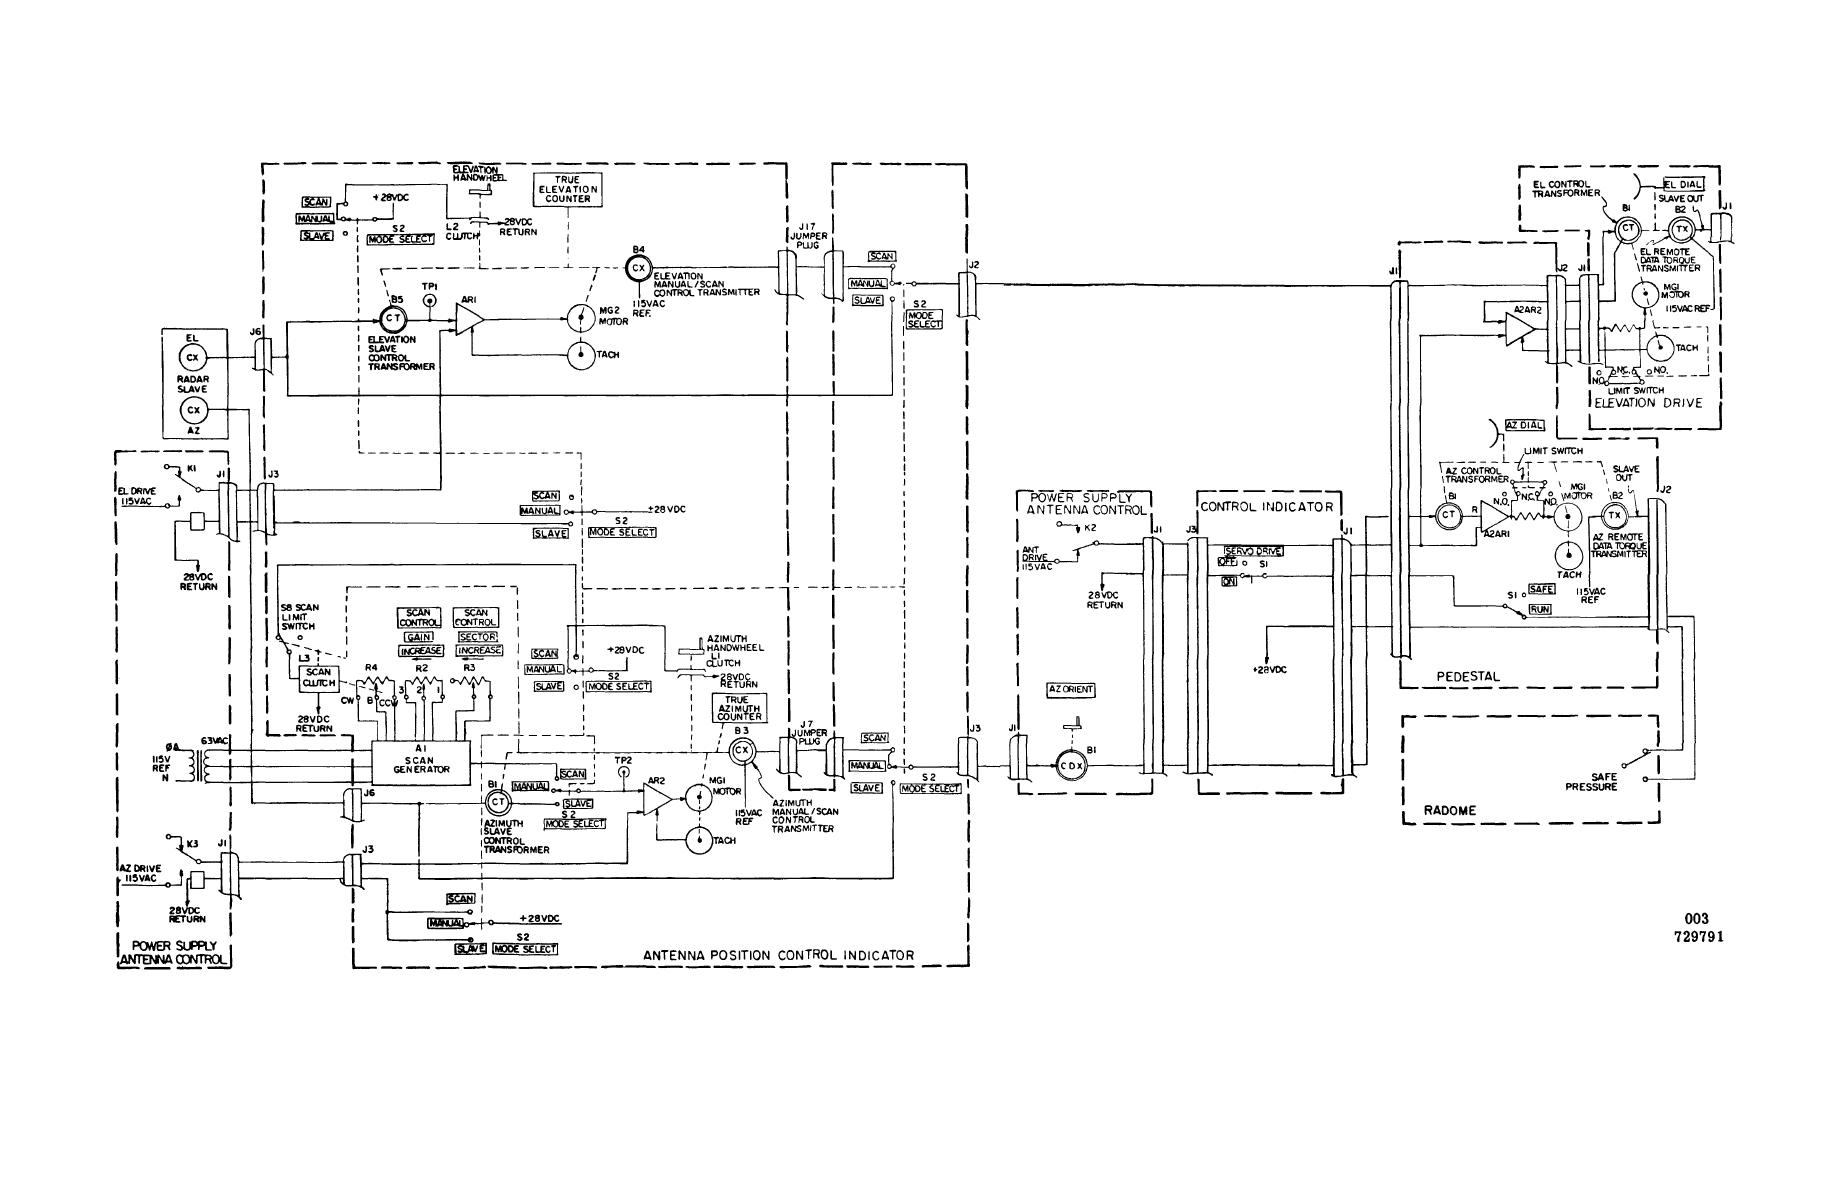 Popular Circuits Page 185 Amplifier Described Here Uses Two Small Amplifiers Like Lm380 Mounted Antenna Positioning And Drive